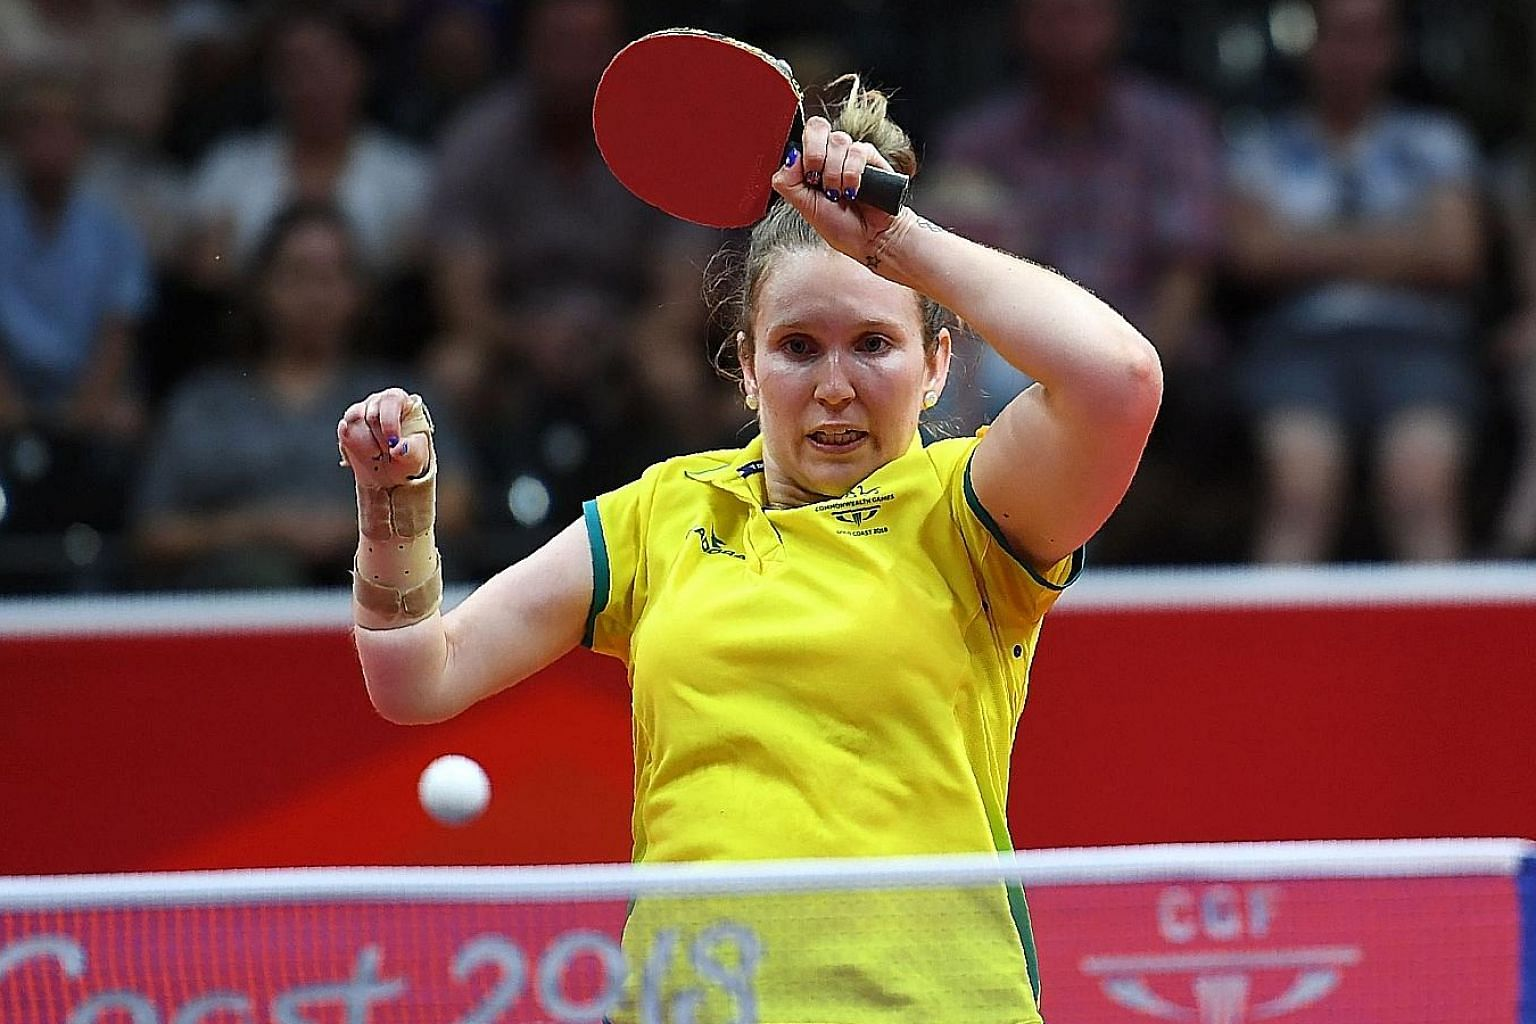 Australia's Melissa Tapper on her way to winning the women's TT6-10 singles gold medal against Nigeria's Faith Obazuaye at the Gold Coast Commonwealth Games on April 14.